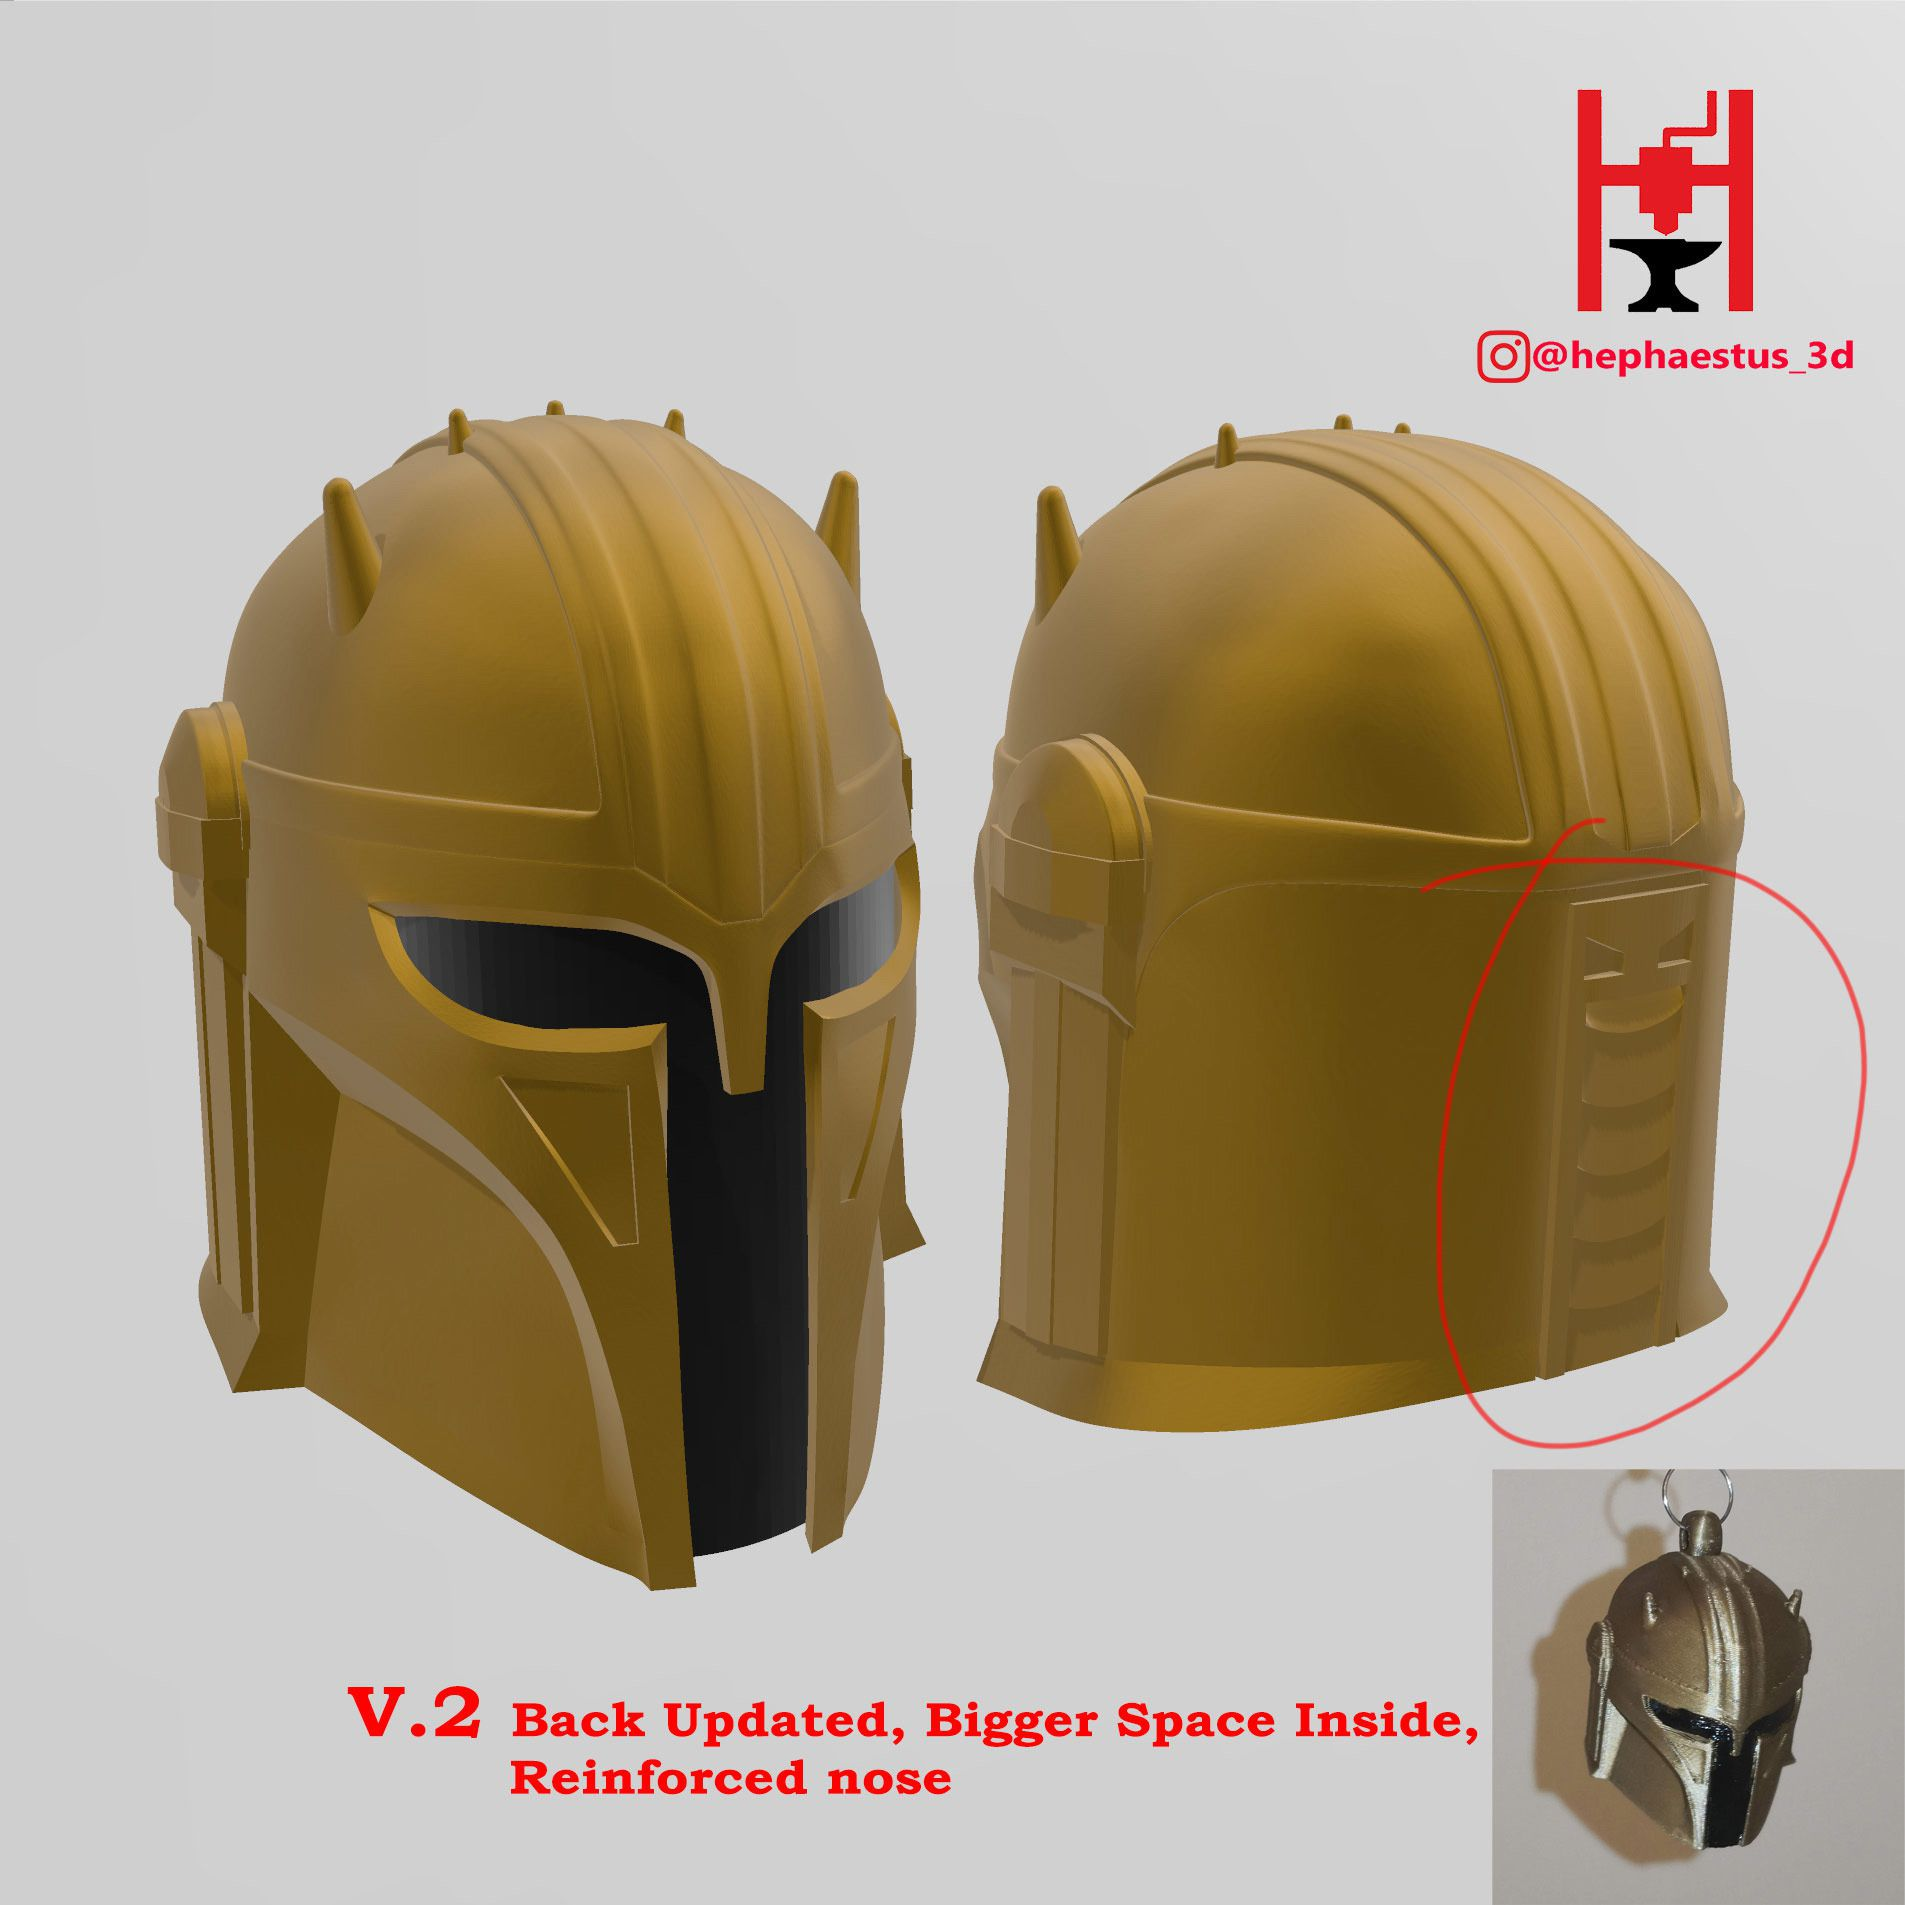 2020-06-21 (13).jpg Download STL file Star Wars Mandalorian Armorer (Blacksmith) Helmet • 3D printer template, Hephaestus3D